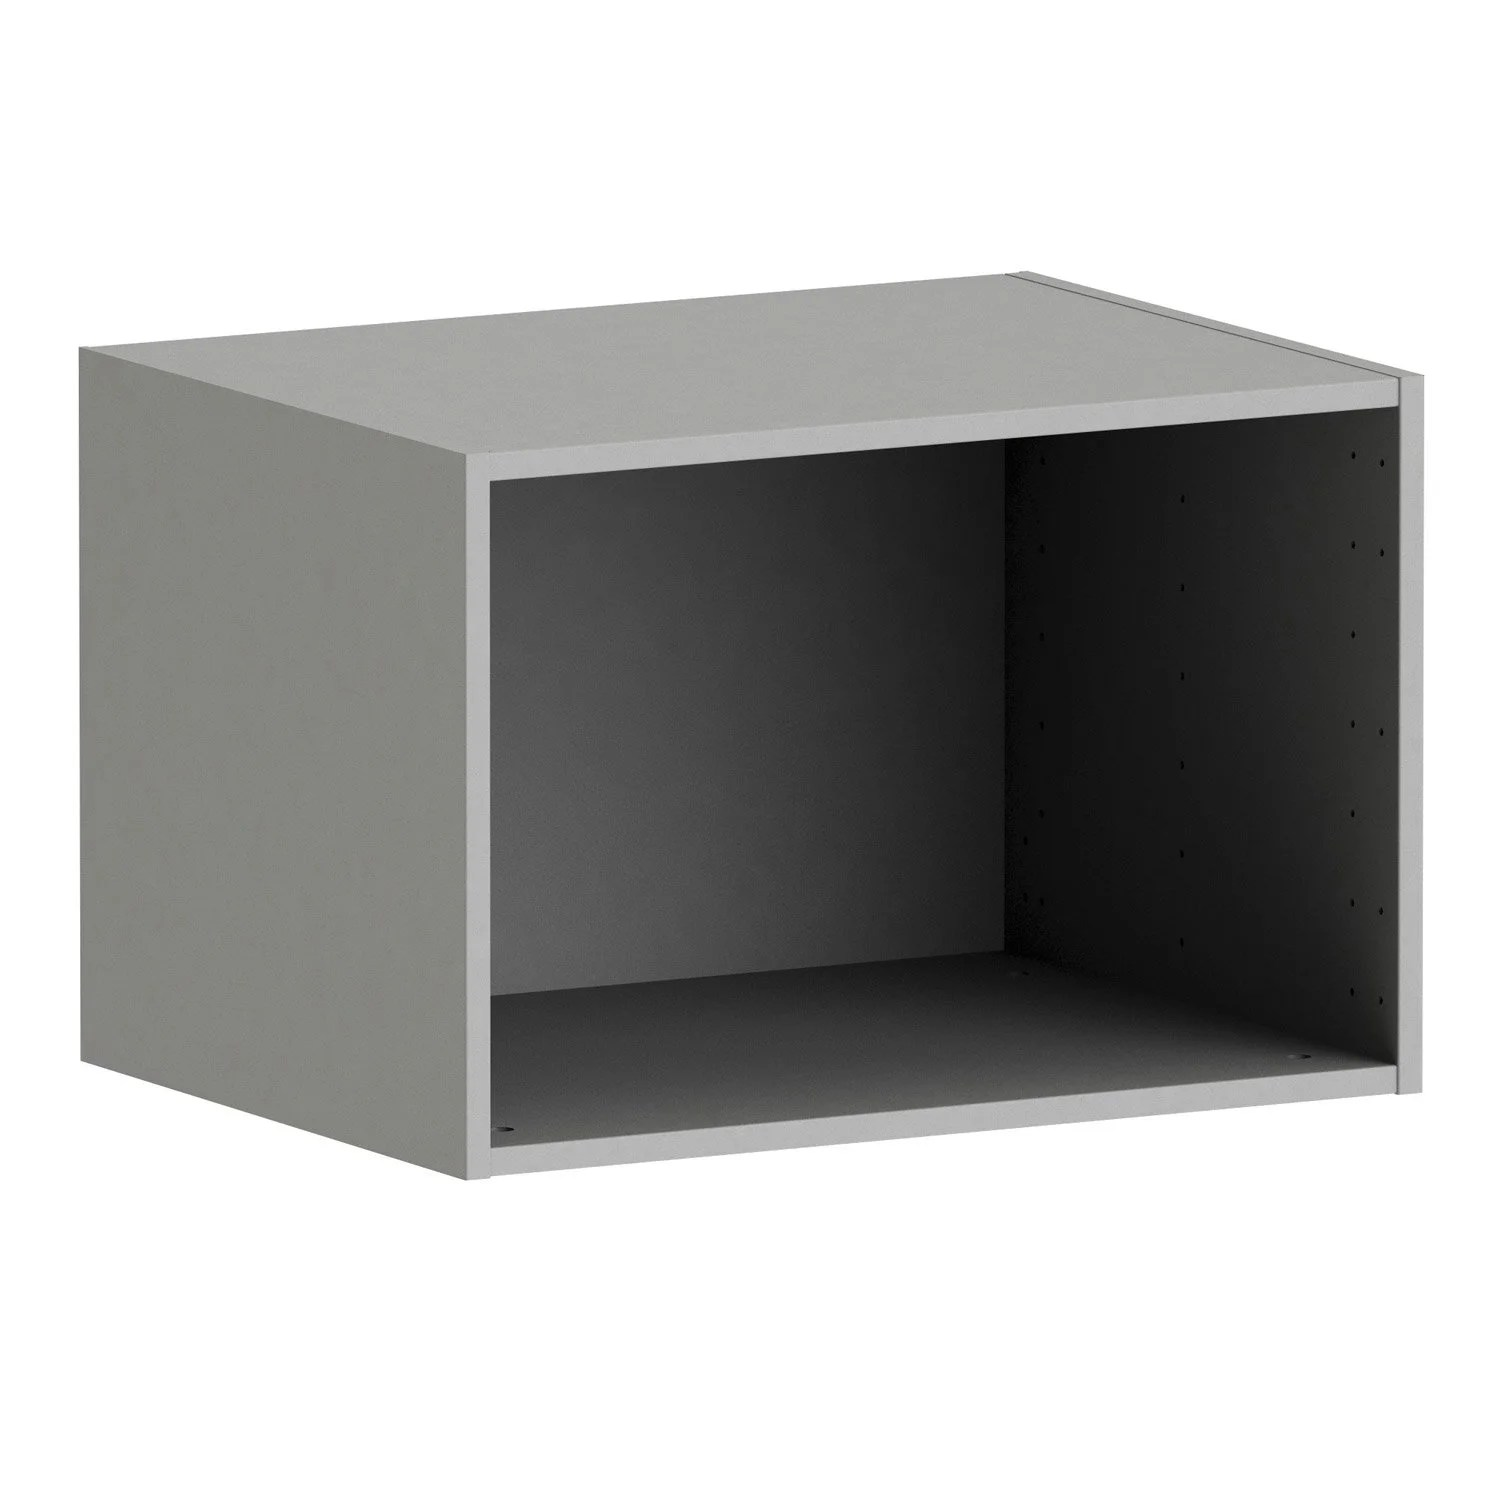 Caisson Spaceo Home Leroy Merlin Caisson Spaceo Home 40 X 60 X 45 Cm Anthracite Leroy Merlin